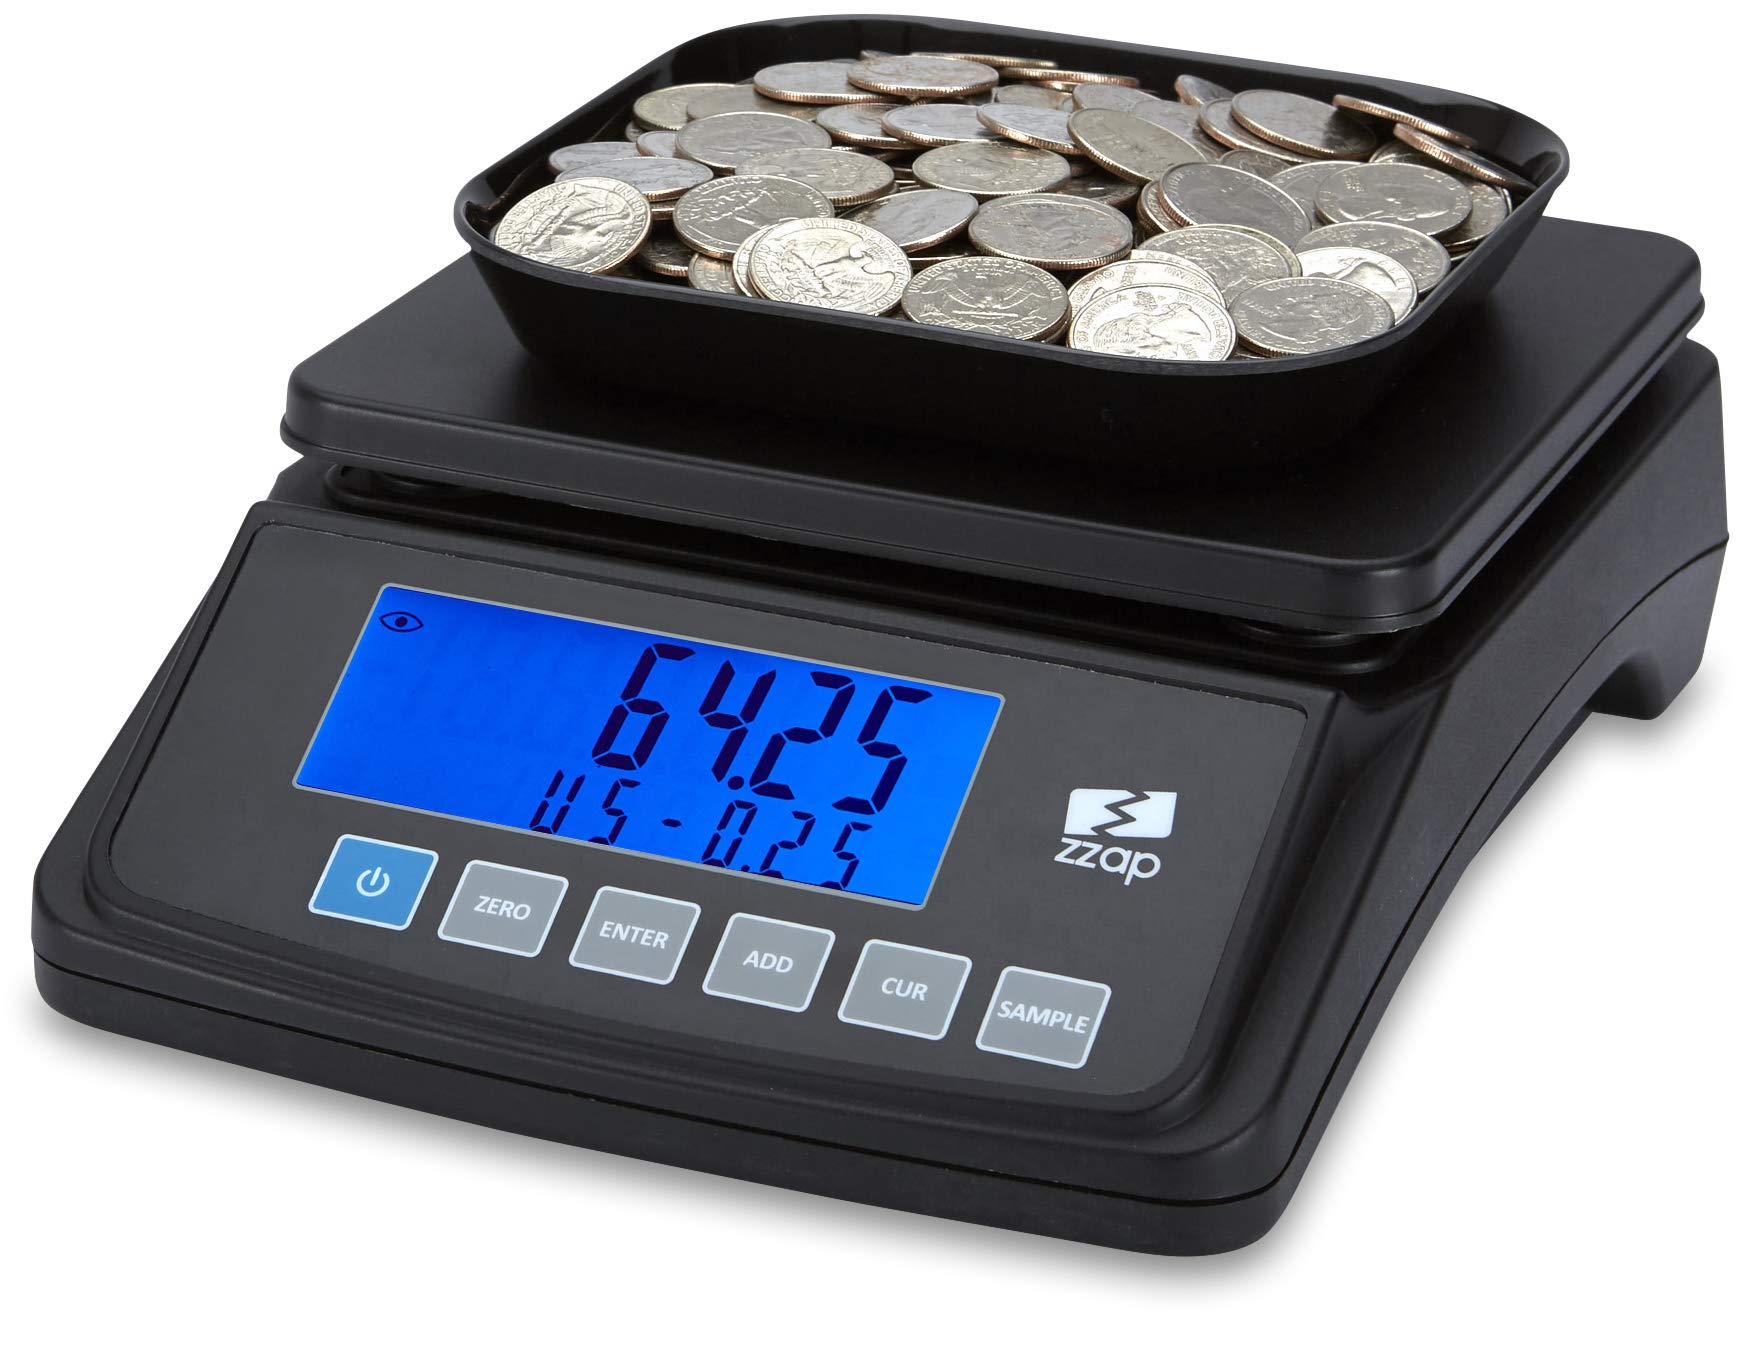 ZZap MS10 Coin Counting Scale - Money Cash Currency Weighing Machine by ZZap